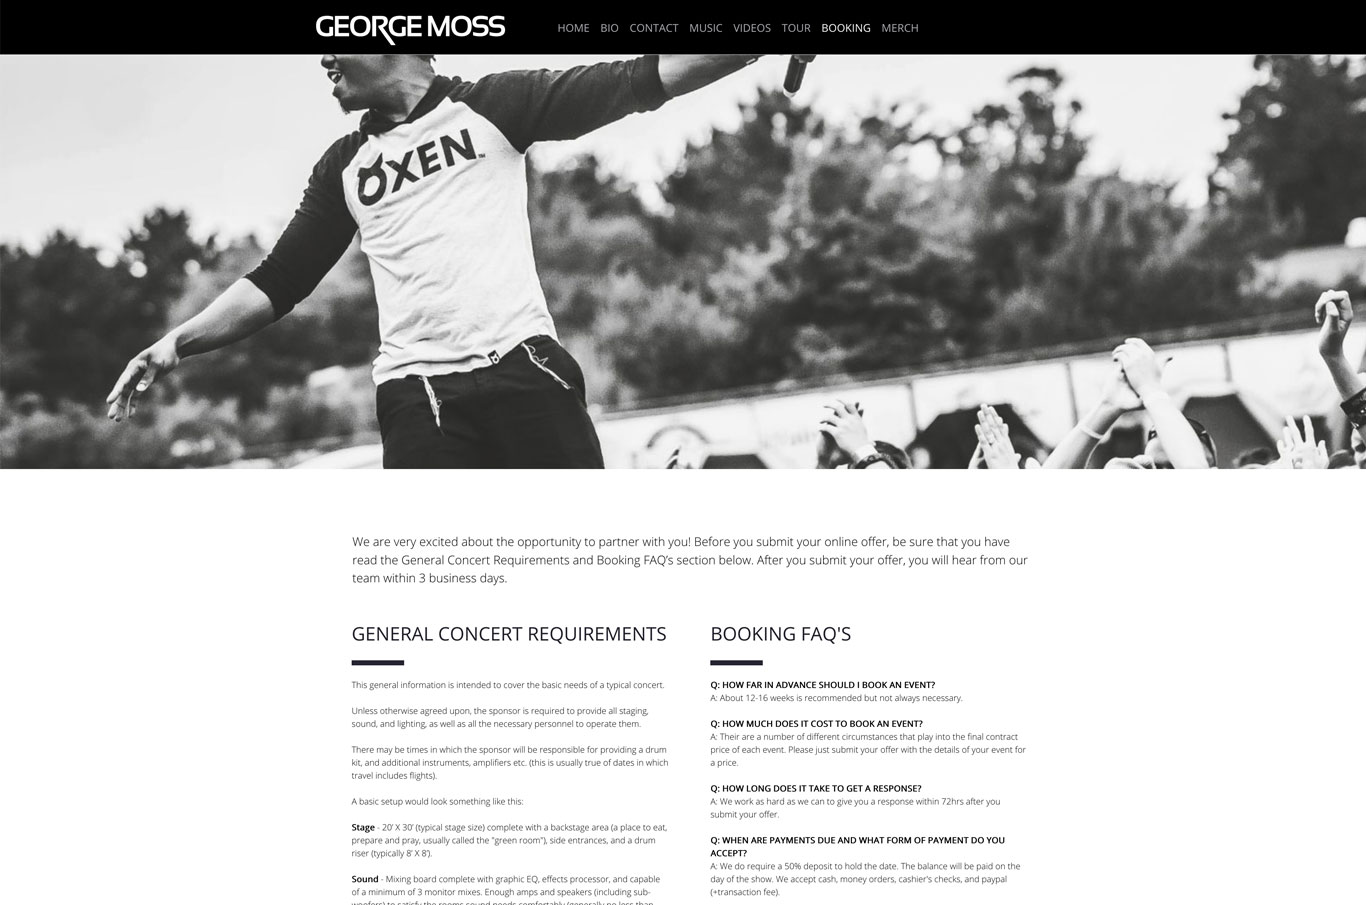 Singer website design George Moss